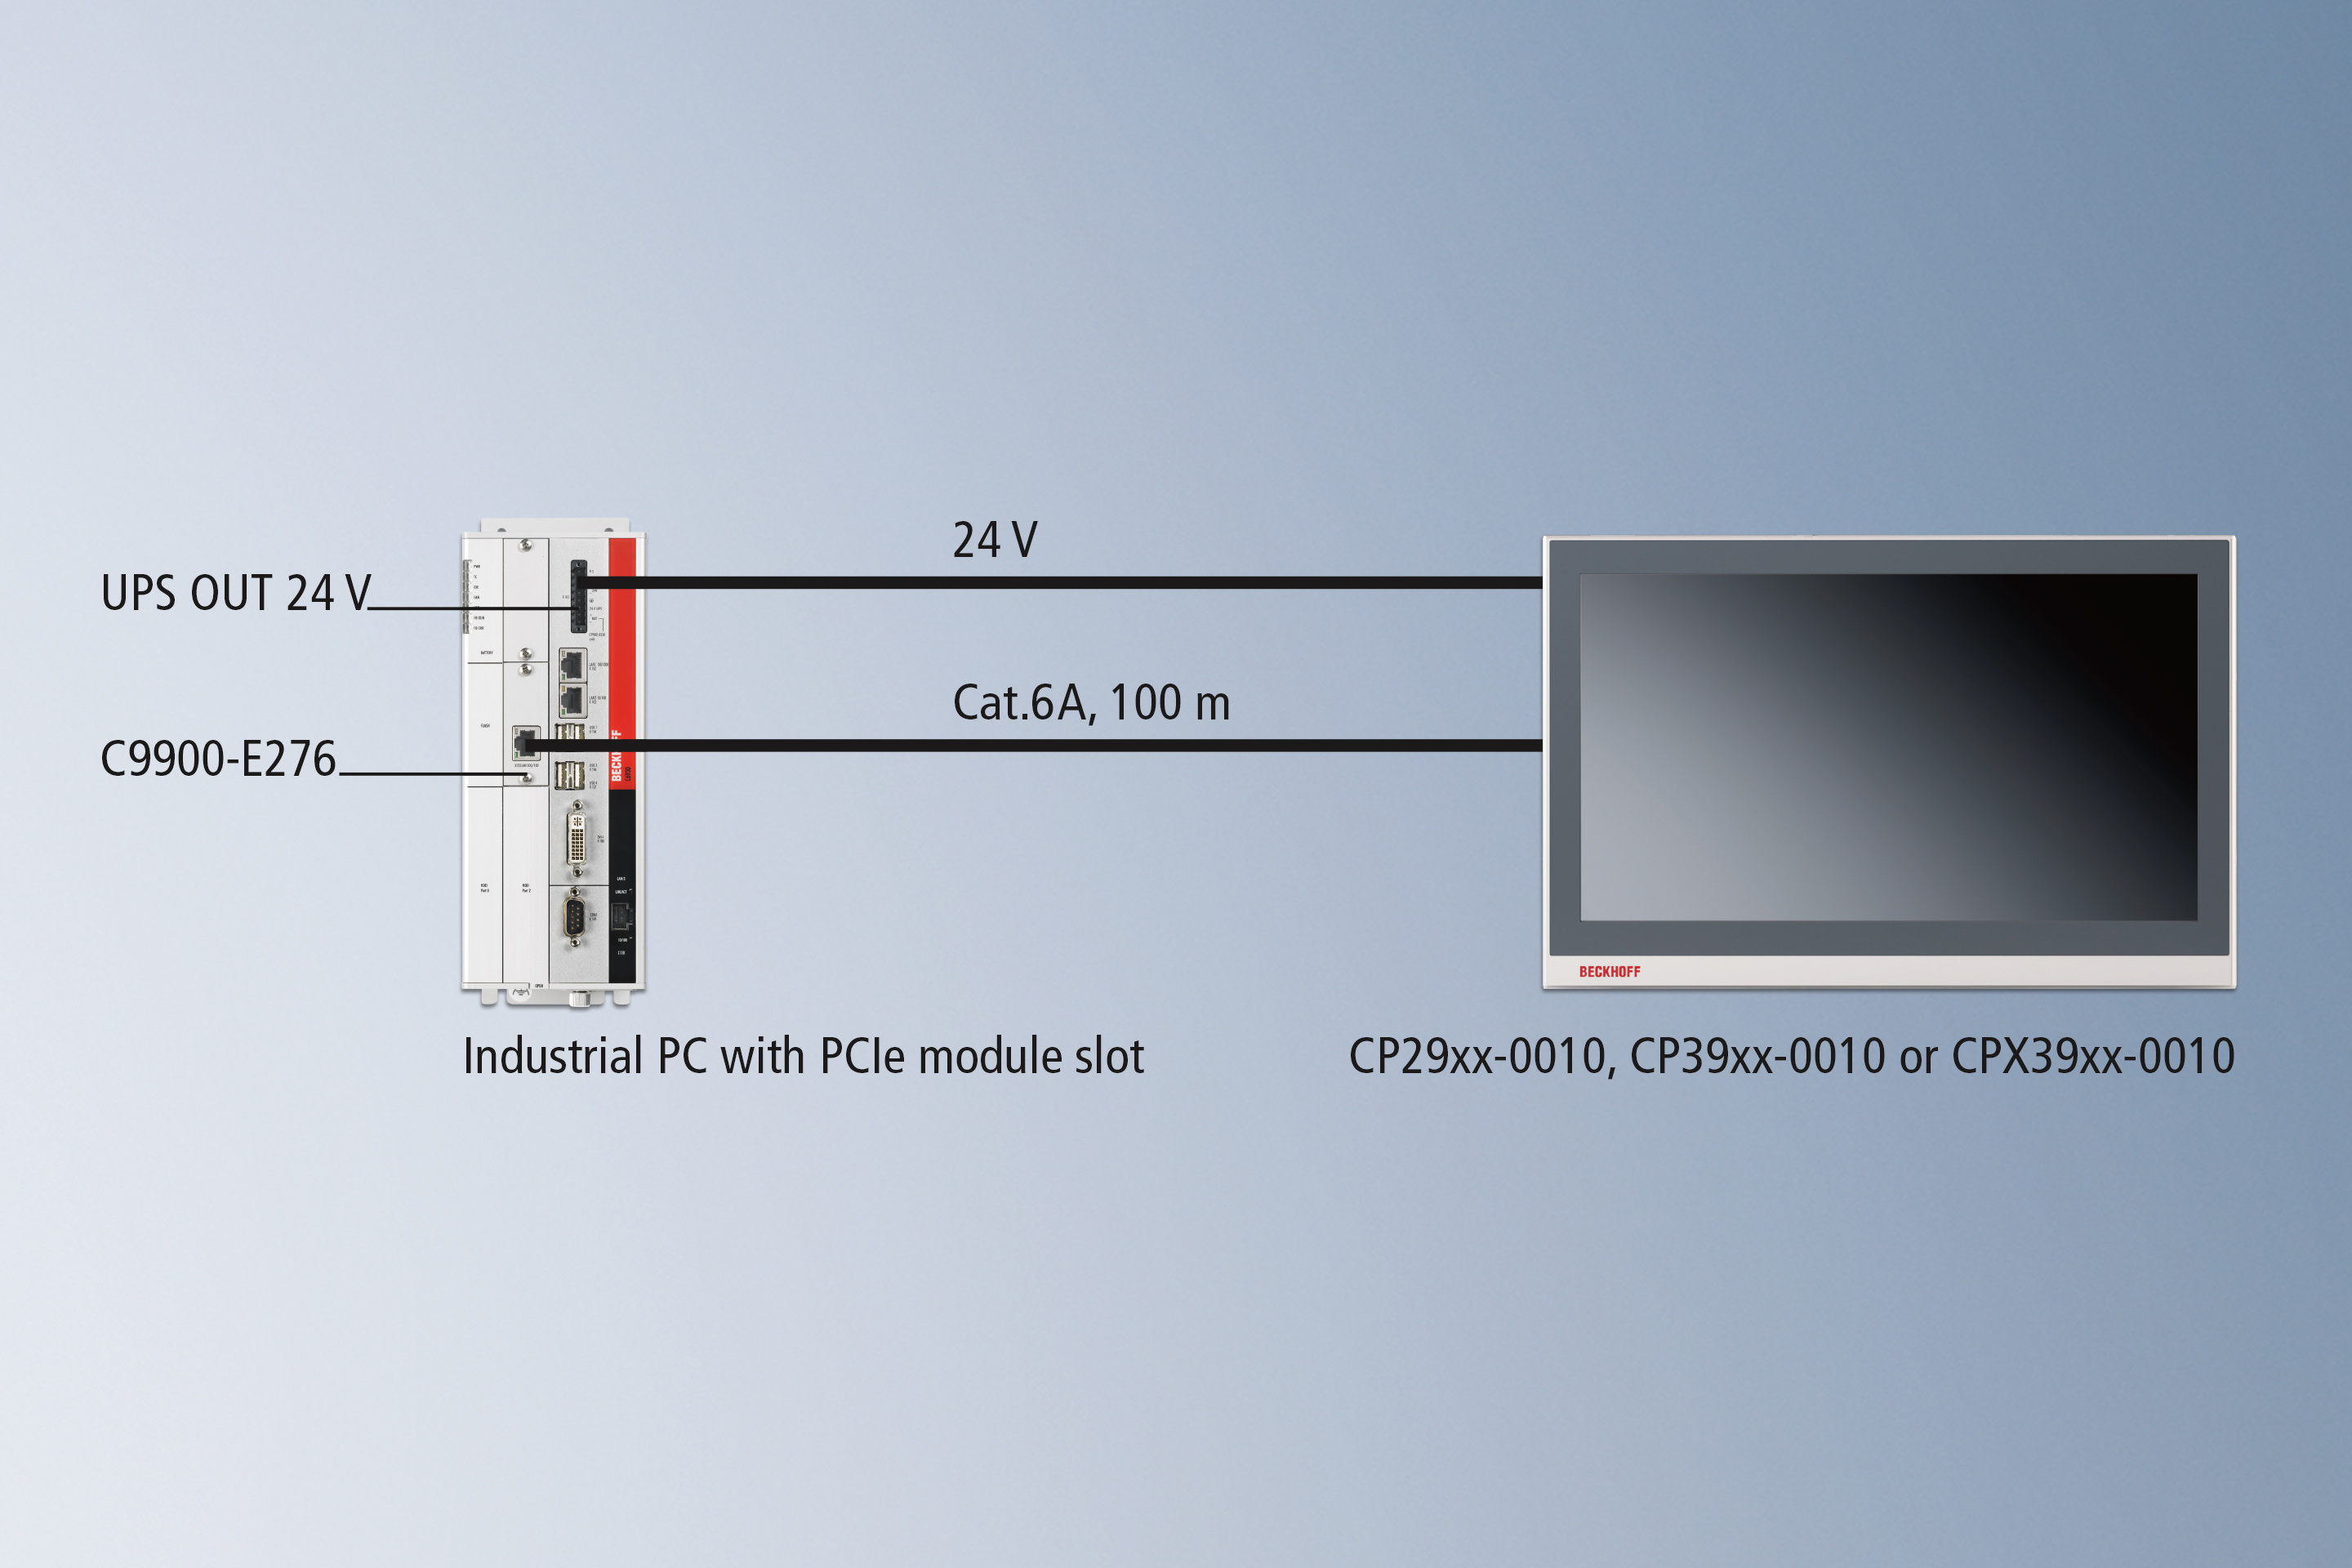 CP-Link 4 – The Two Cable Display Link: via C9900-E276 PCIe module integrated in the PC